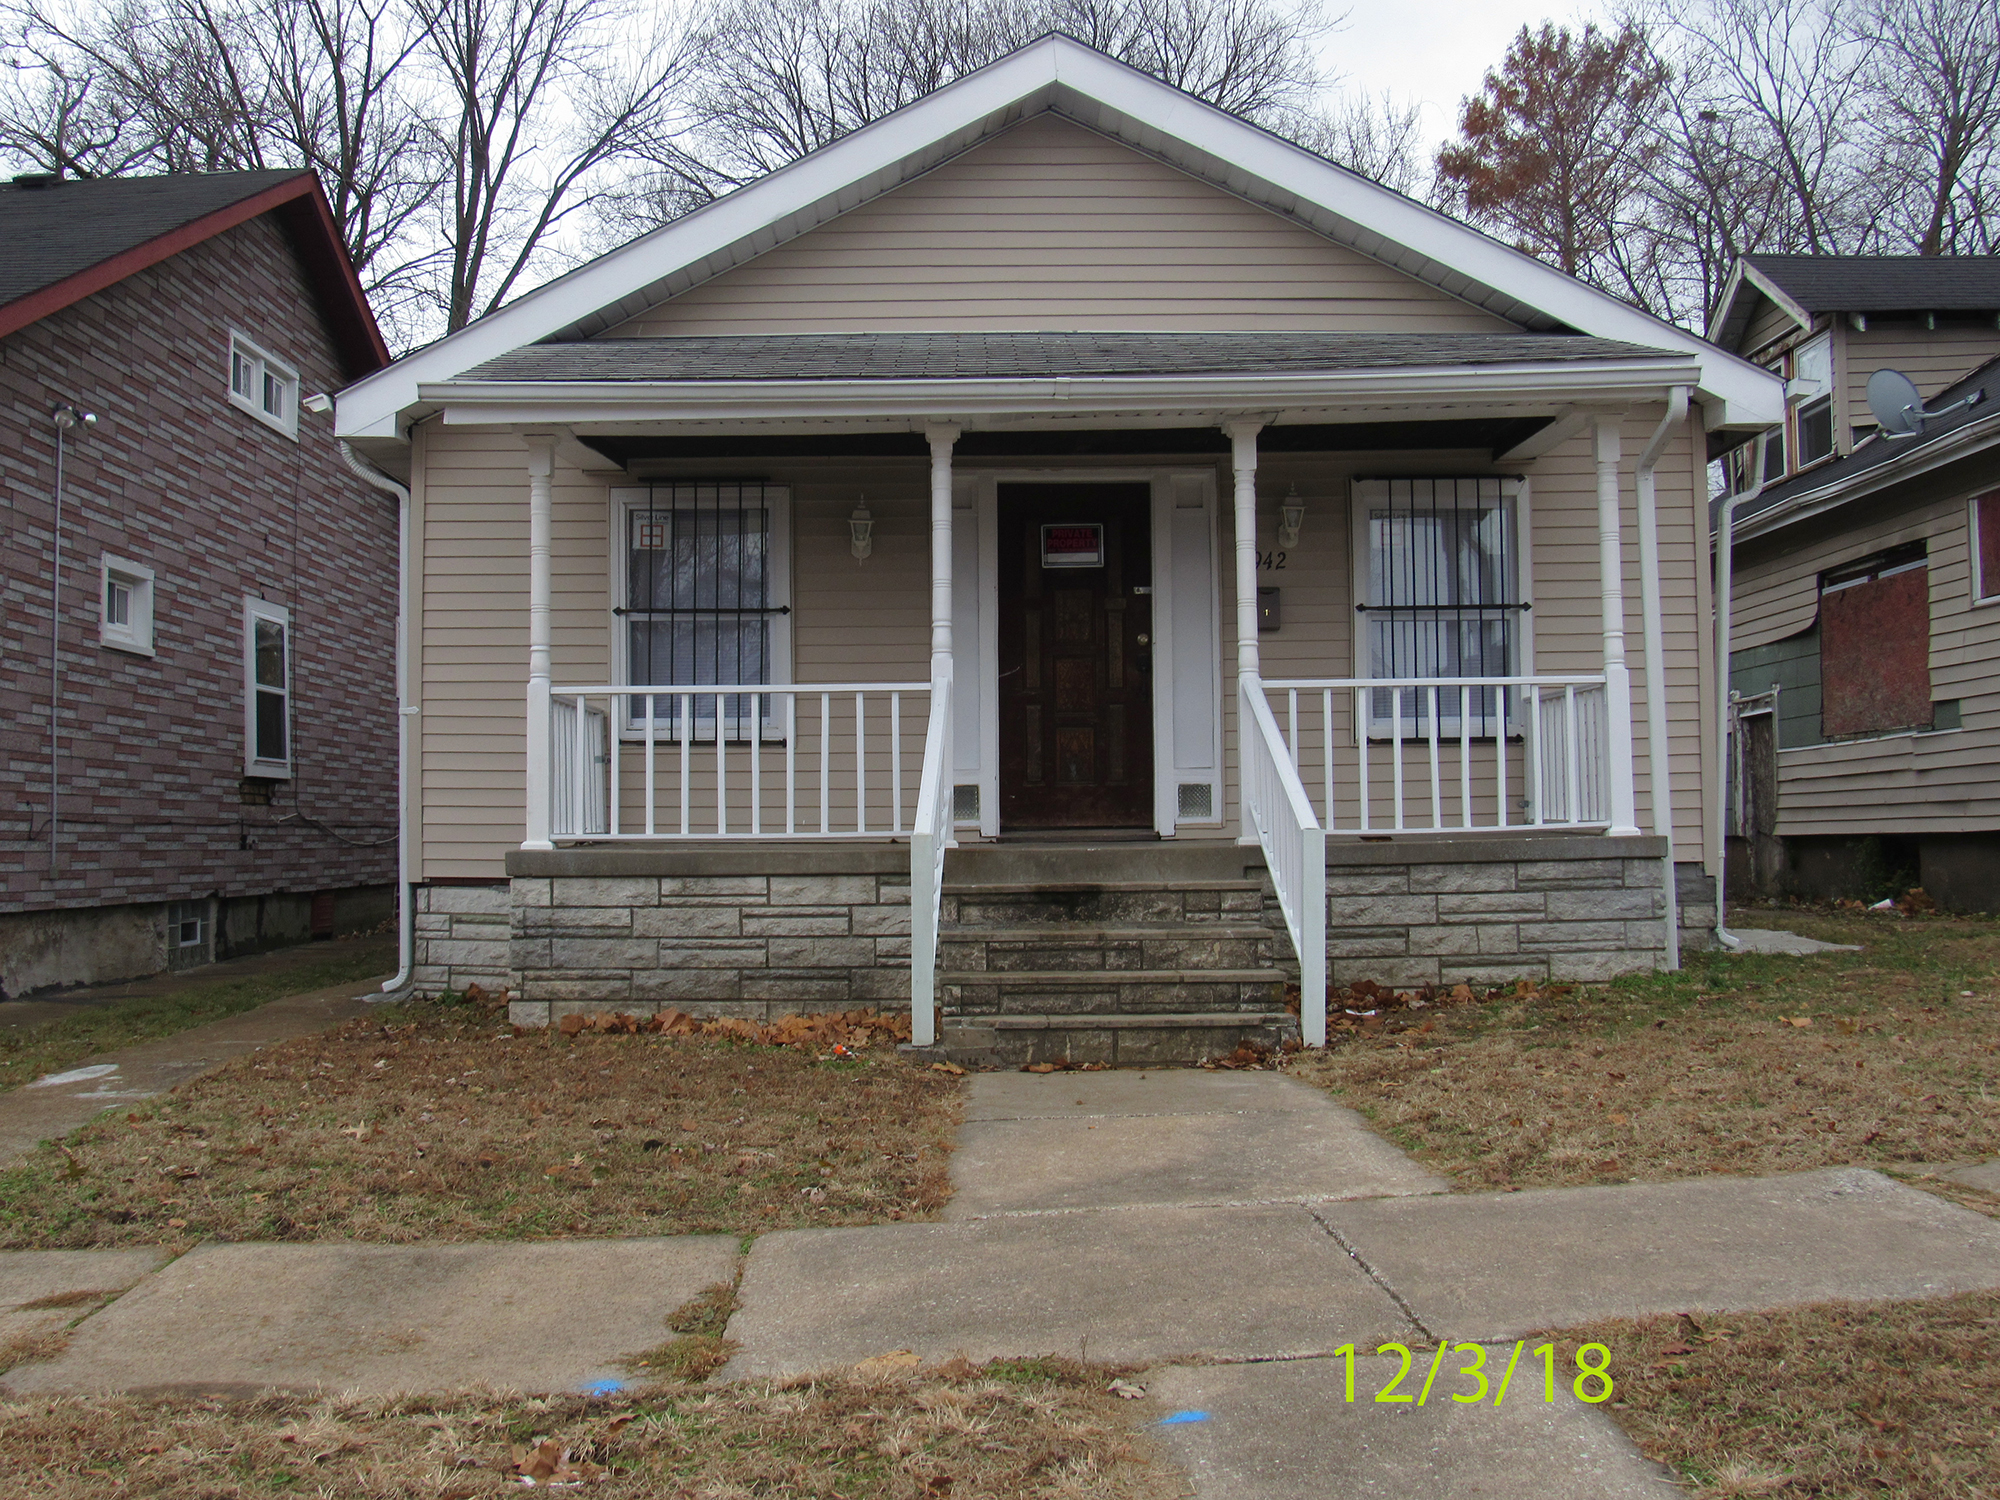 5942 Harney ave - After LRA